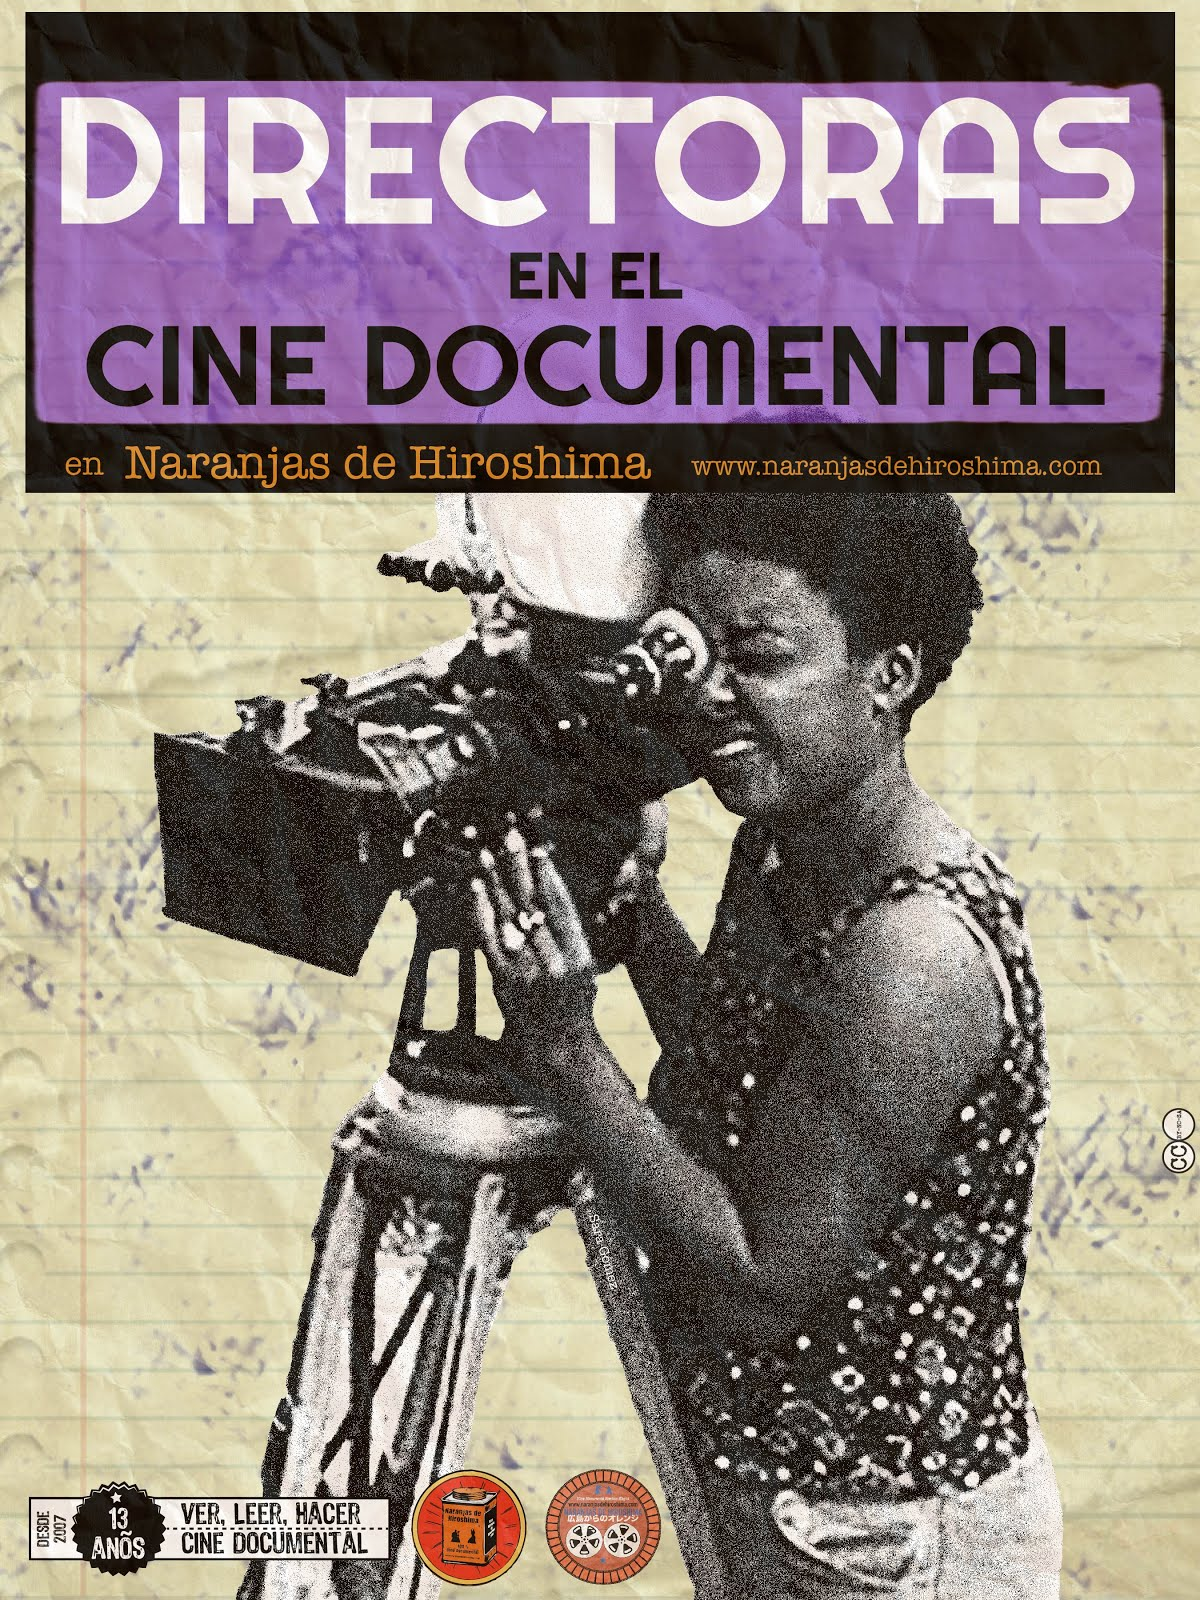 #Directoras en el #Cine #Documental